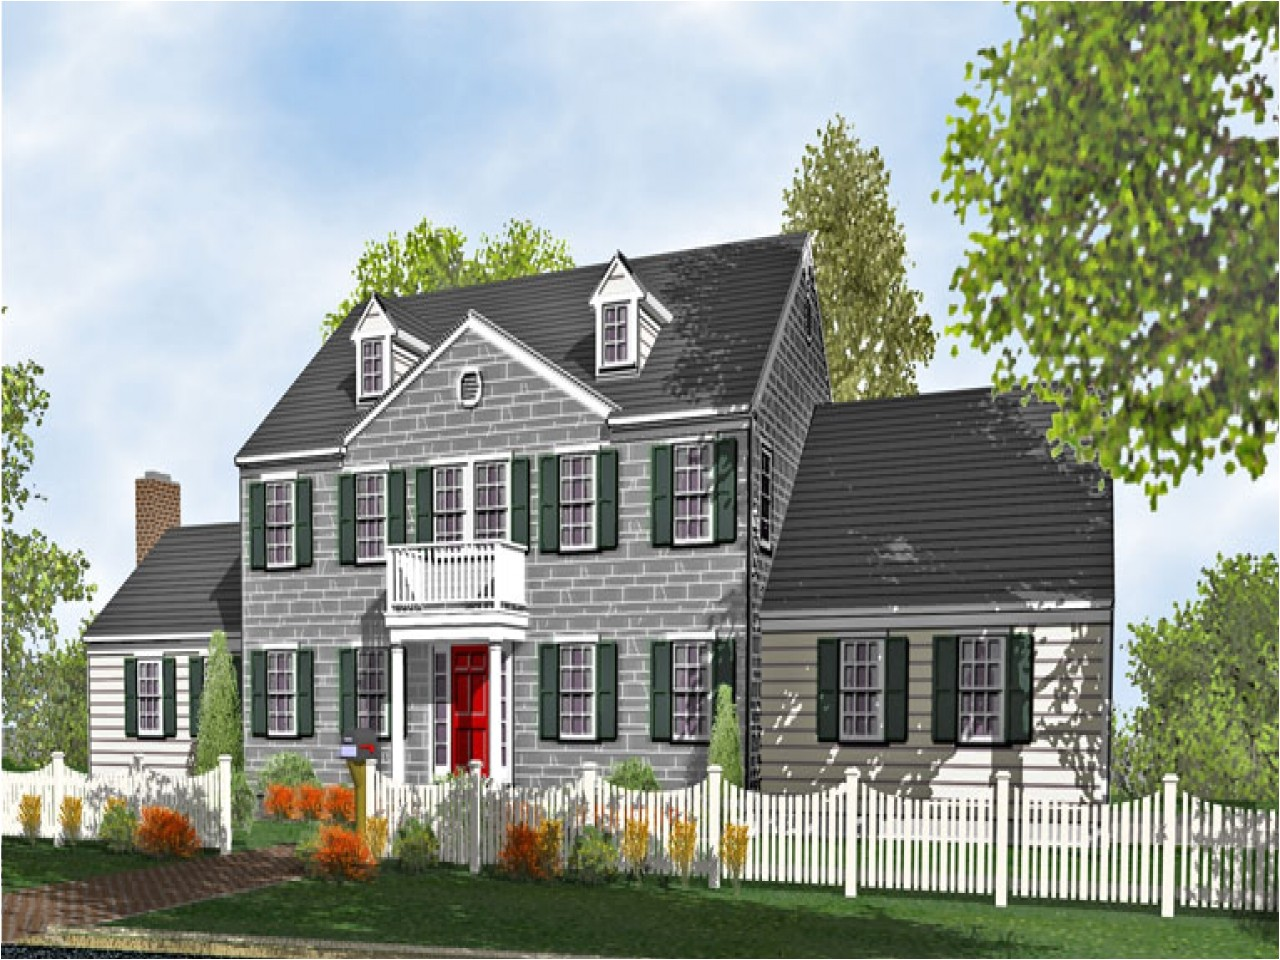 a43b34d6559a025d colonial style homes colonial two story home plans for sale original home plans